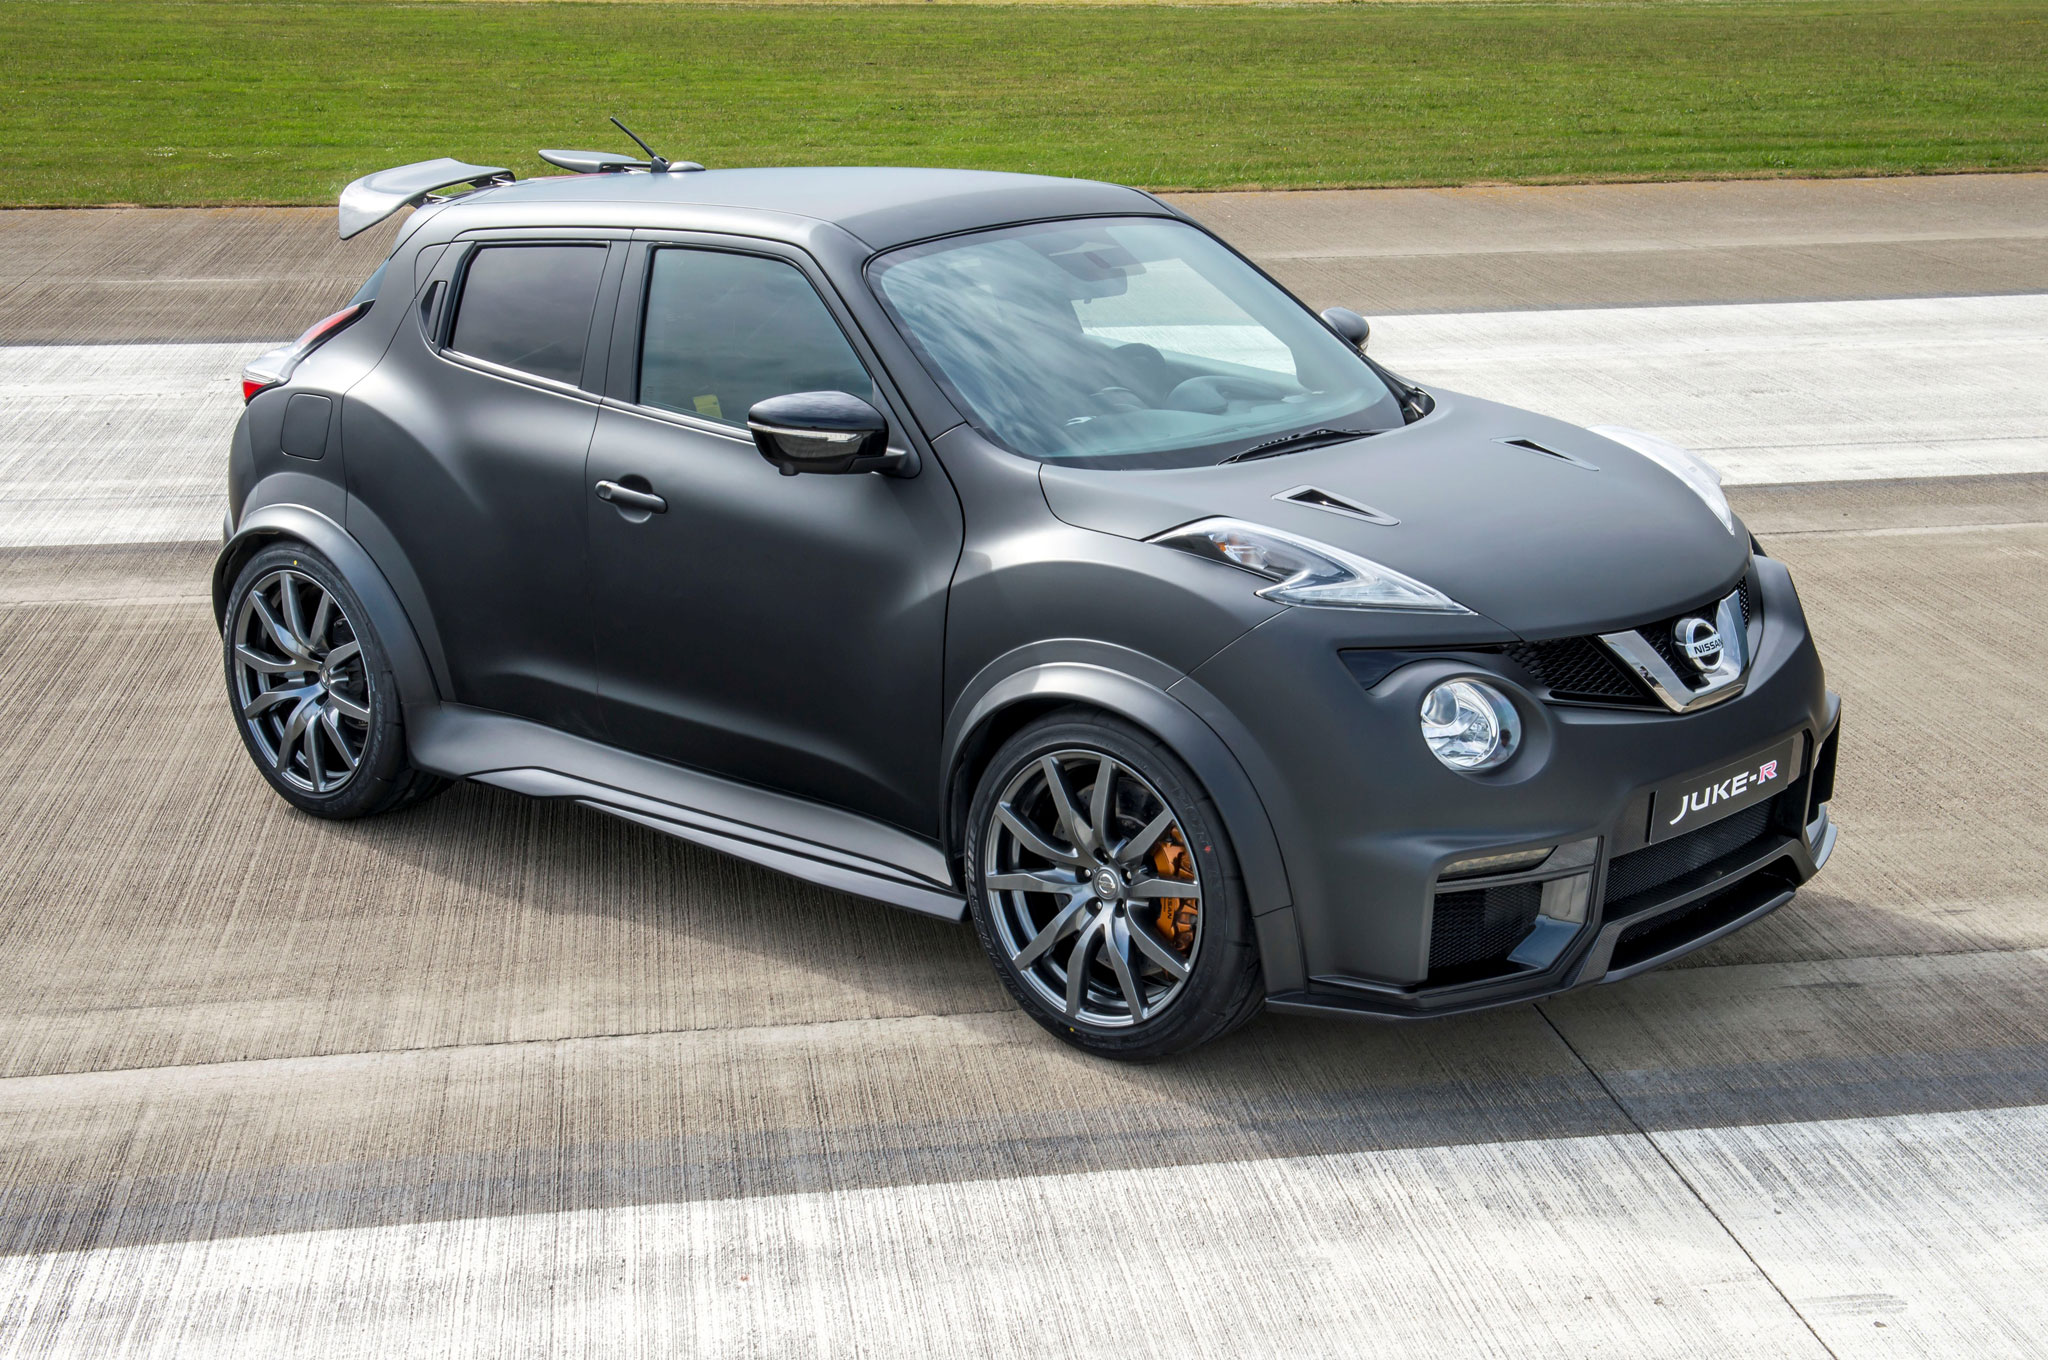 Nissan JukeR 20 is a 600HP Crossover from Hell